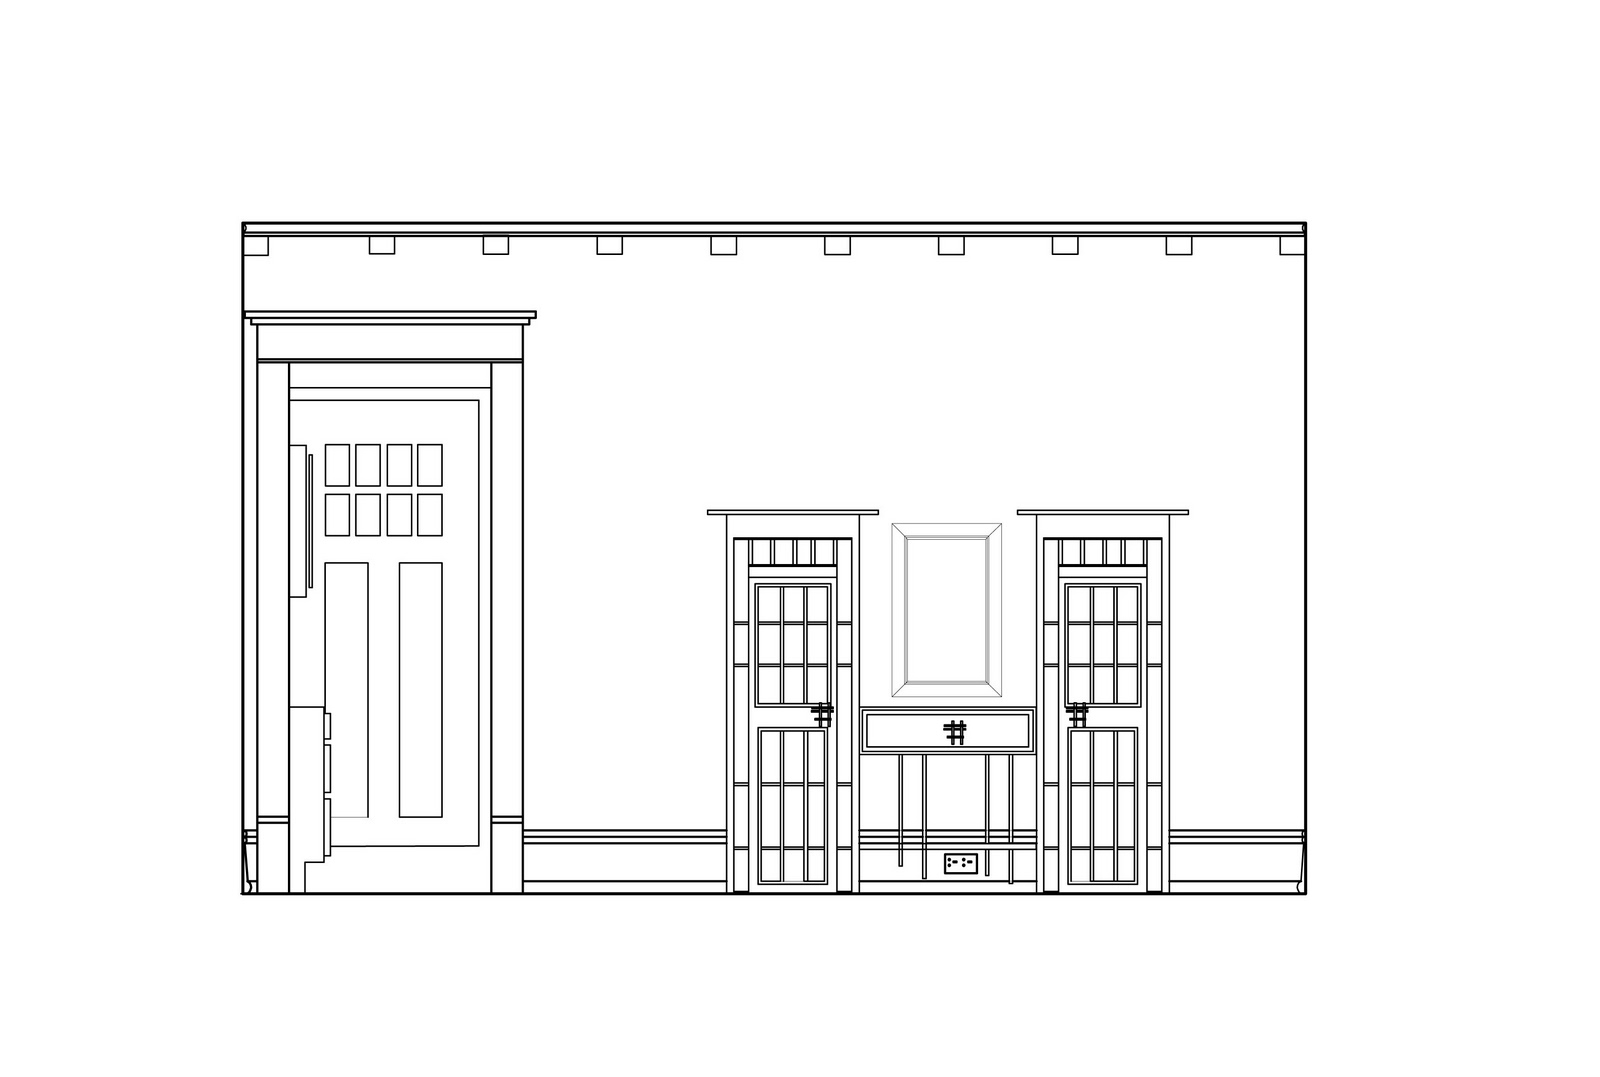 Auto cad shane jones for Dining room elevation